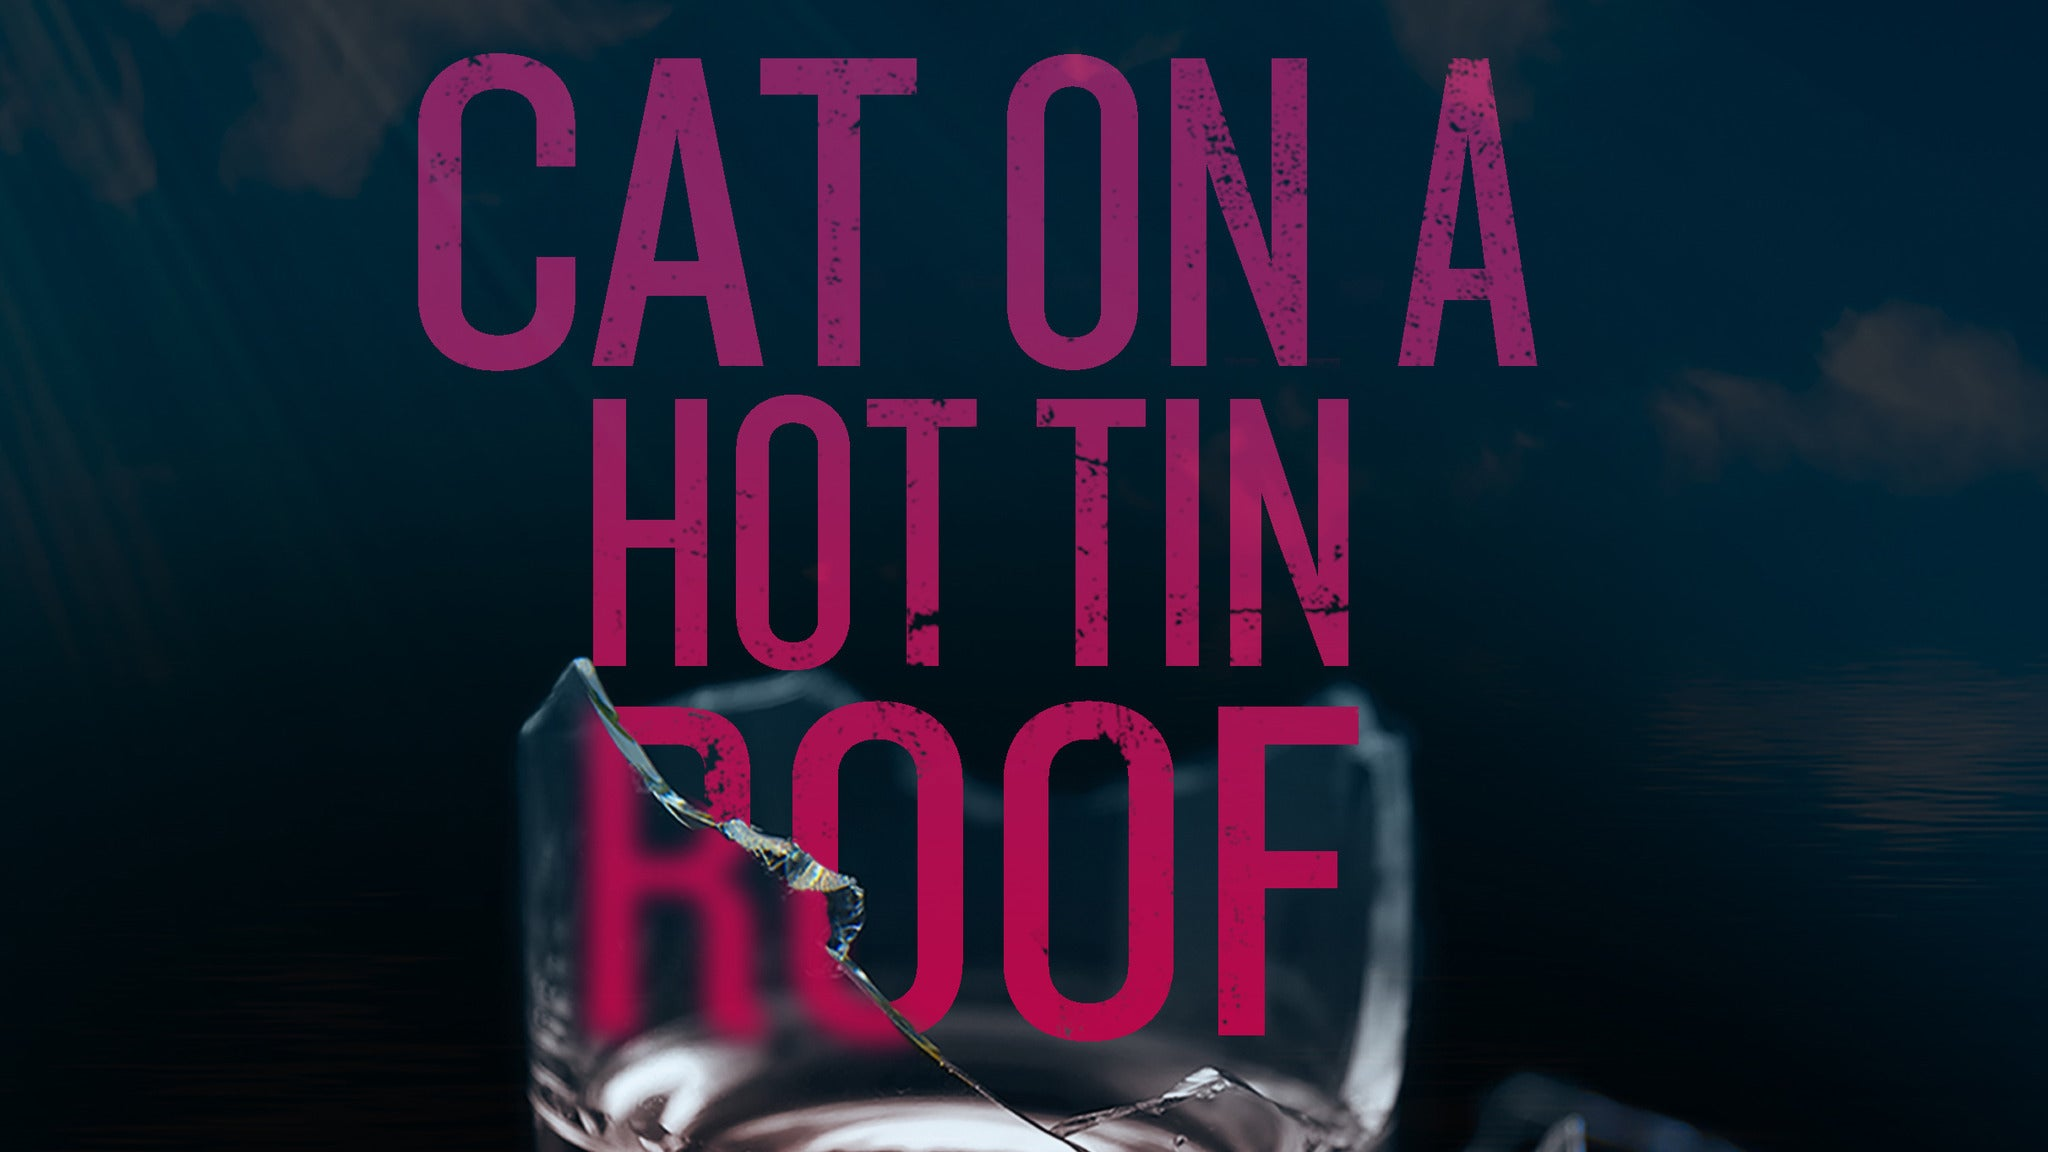 Drury Lane Theatre Presents: Cat On A Hot Tin Roof